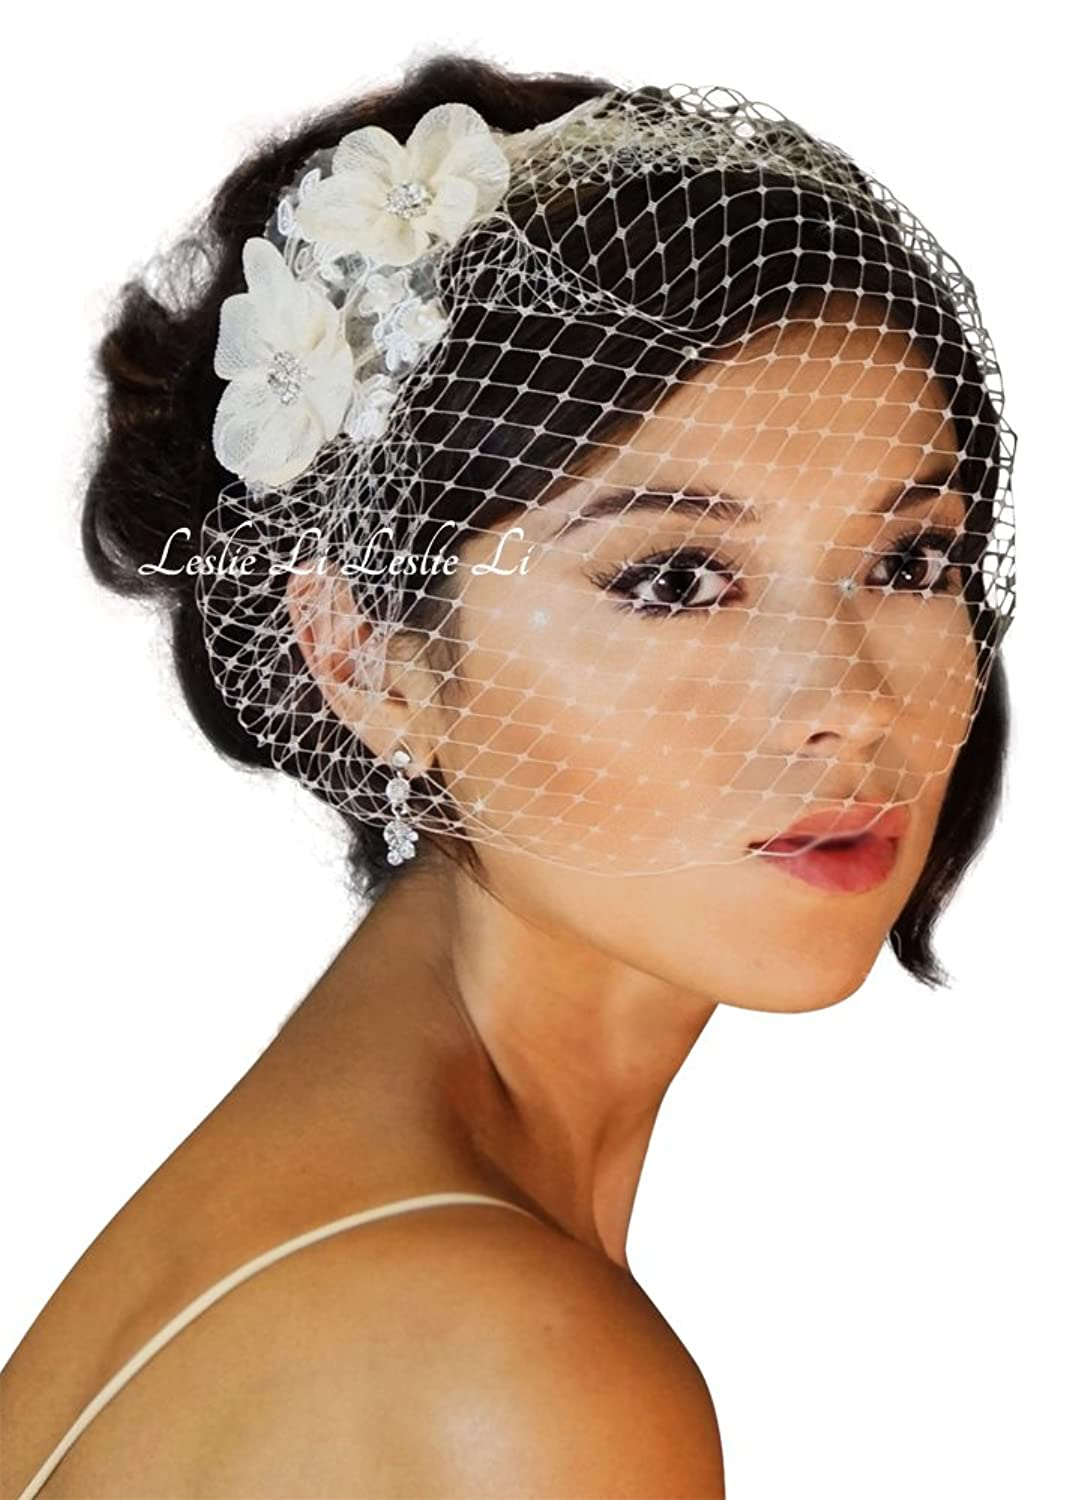 Bridal tiaras and veils - Leslie Li Women S Floret Lace Hair Comb Bridal Birdcage Veil One Size Ivory 23 117